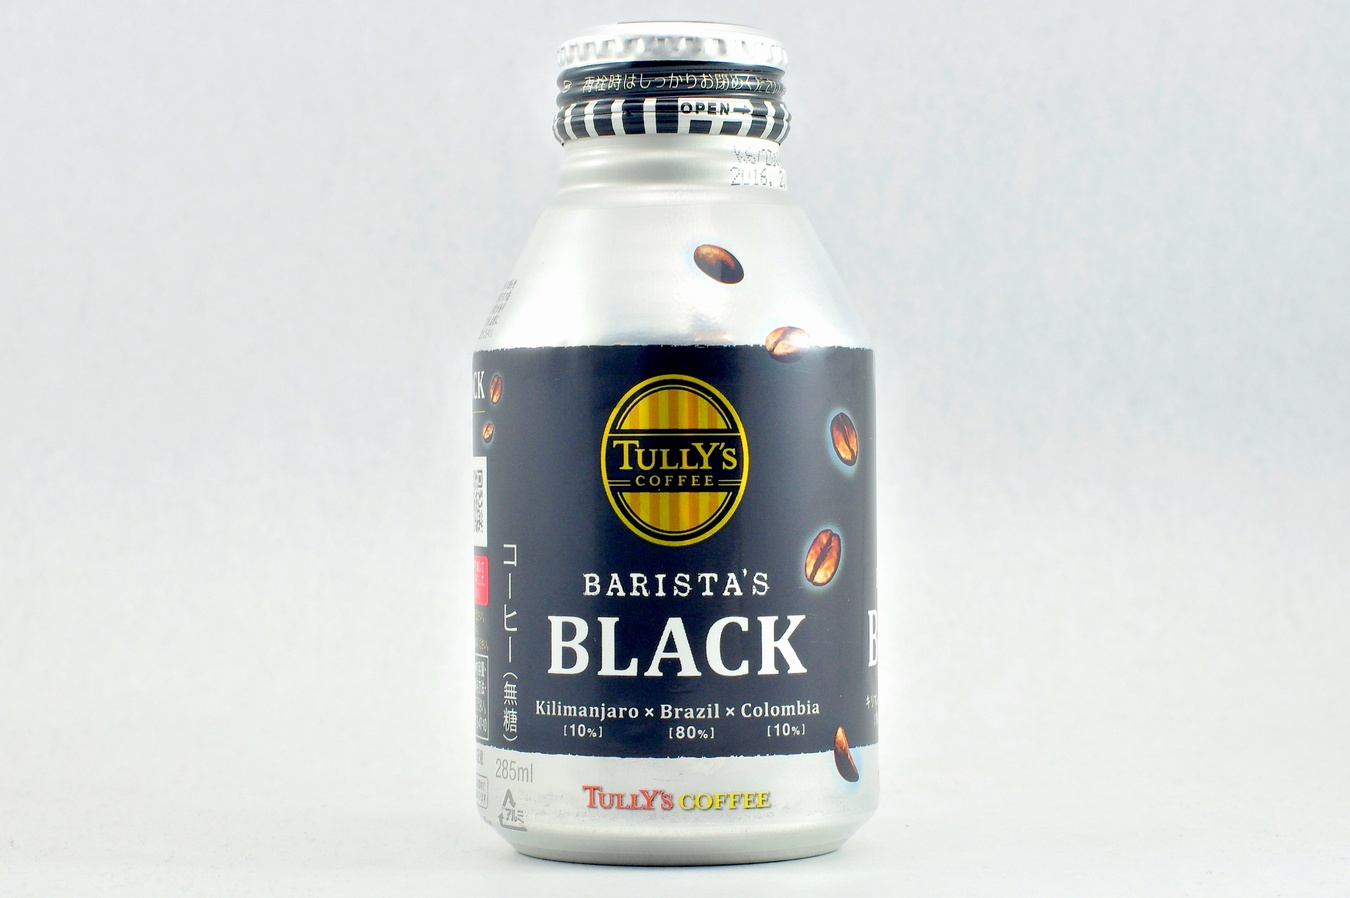 TULLY'S COFFEE BARISTA'S BLACK 285mlボトル缶 2015年2月